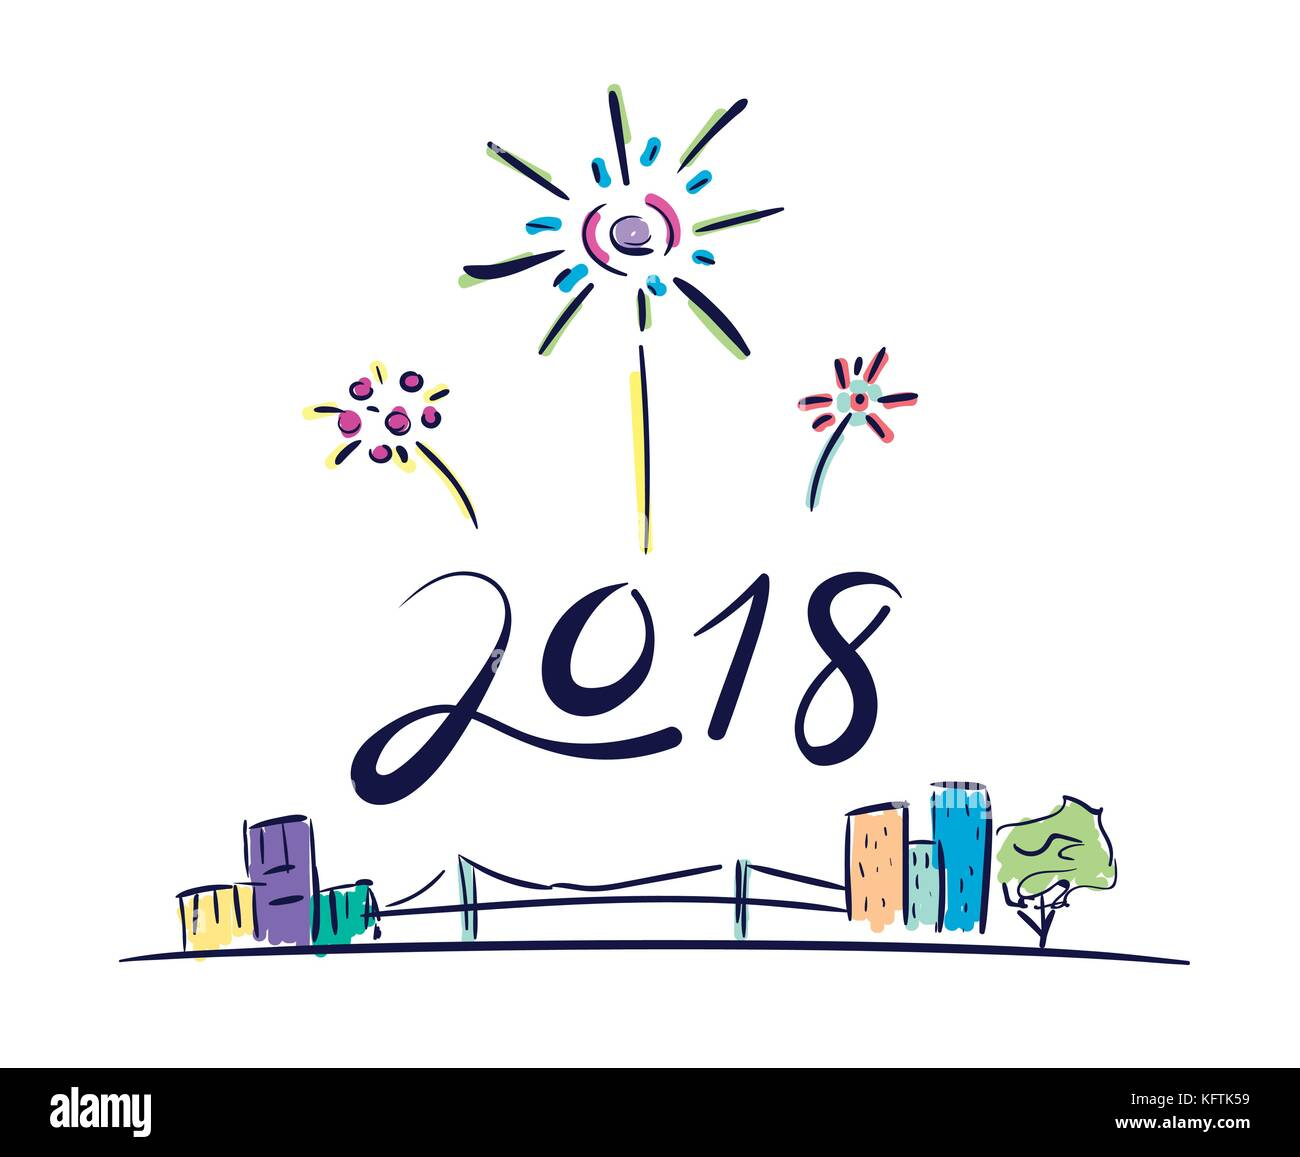 vector of 2018 new year number firework floating over cityscape in doodle cartoon styleholiday celebration concept